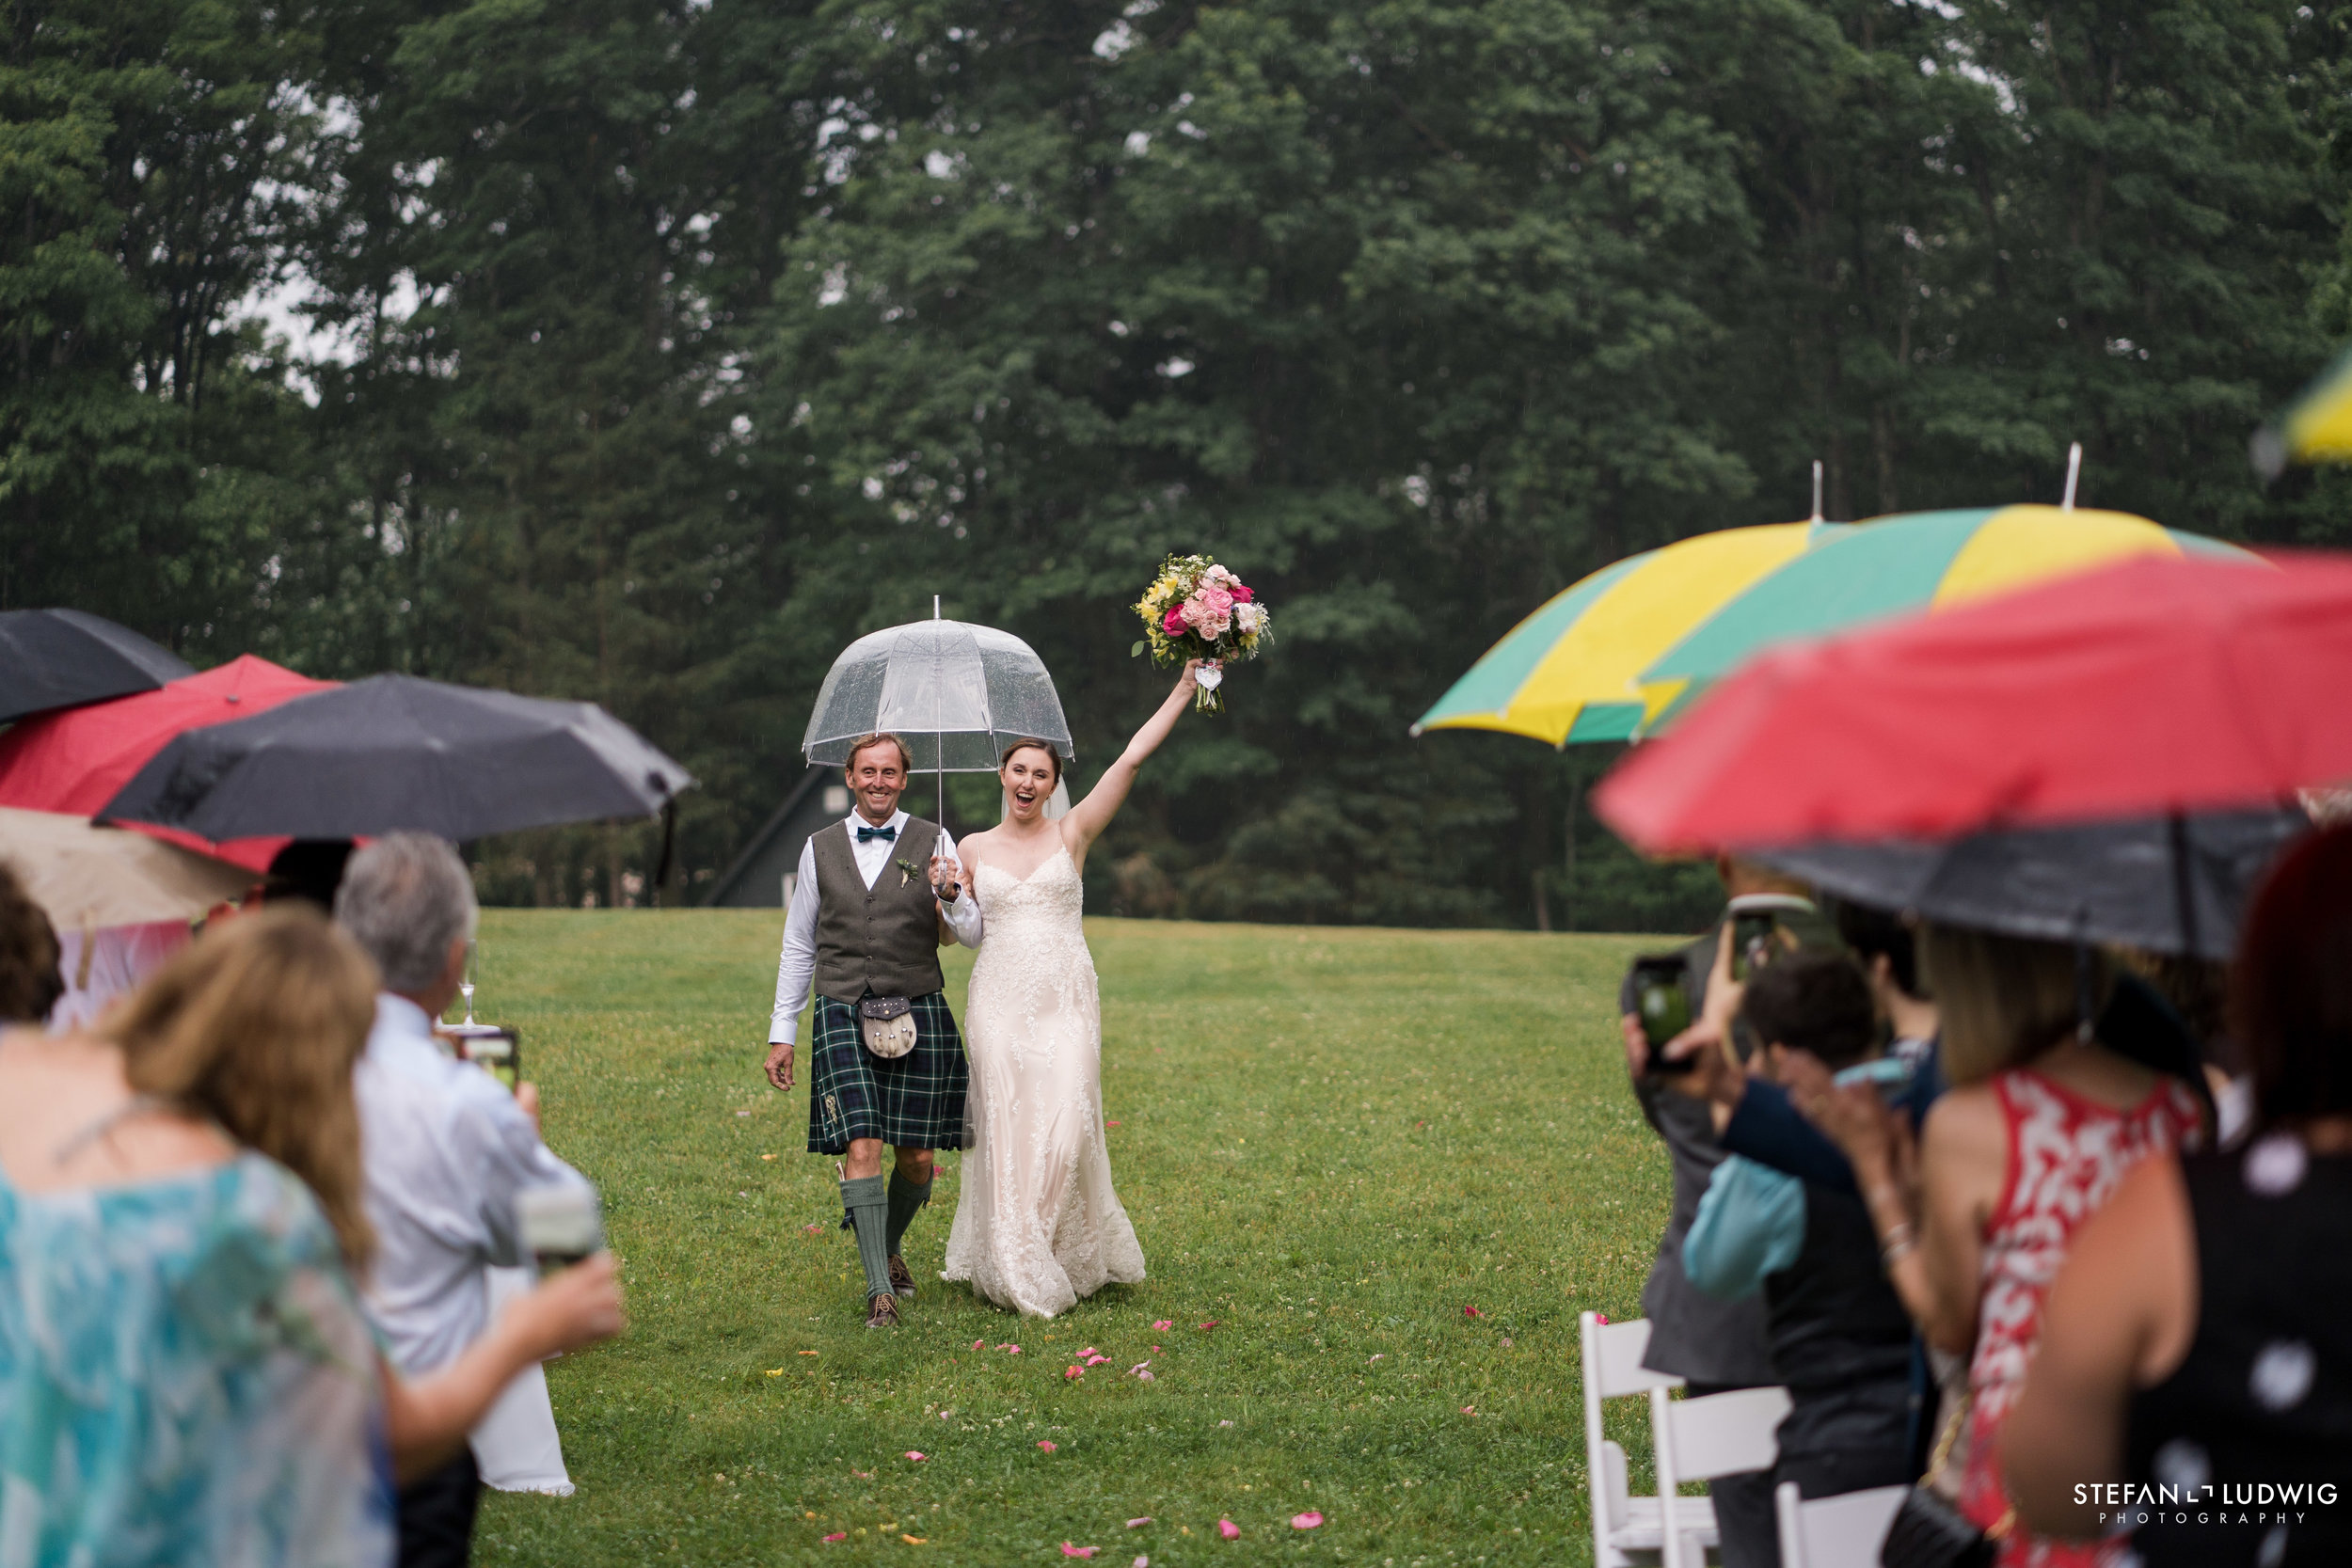 Jess and JR Wedding Photography at Holimont in Ellicottville NY by Stefan Ludwig Photography-48.jpg